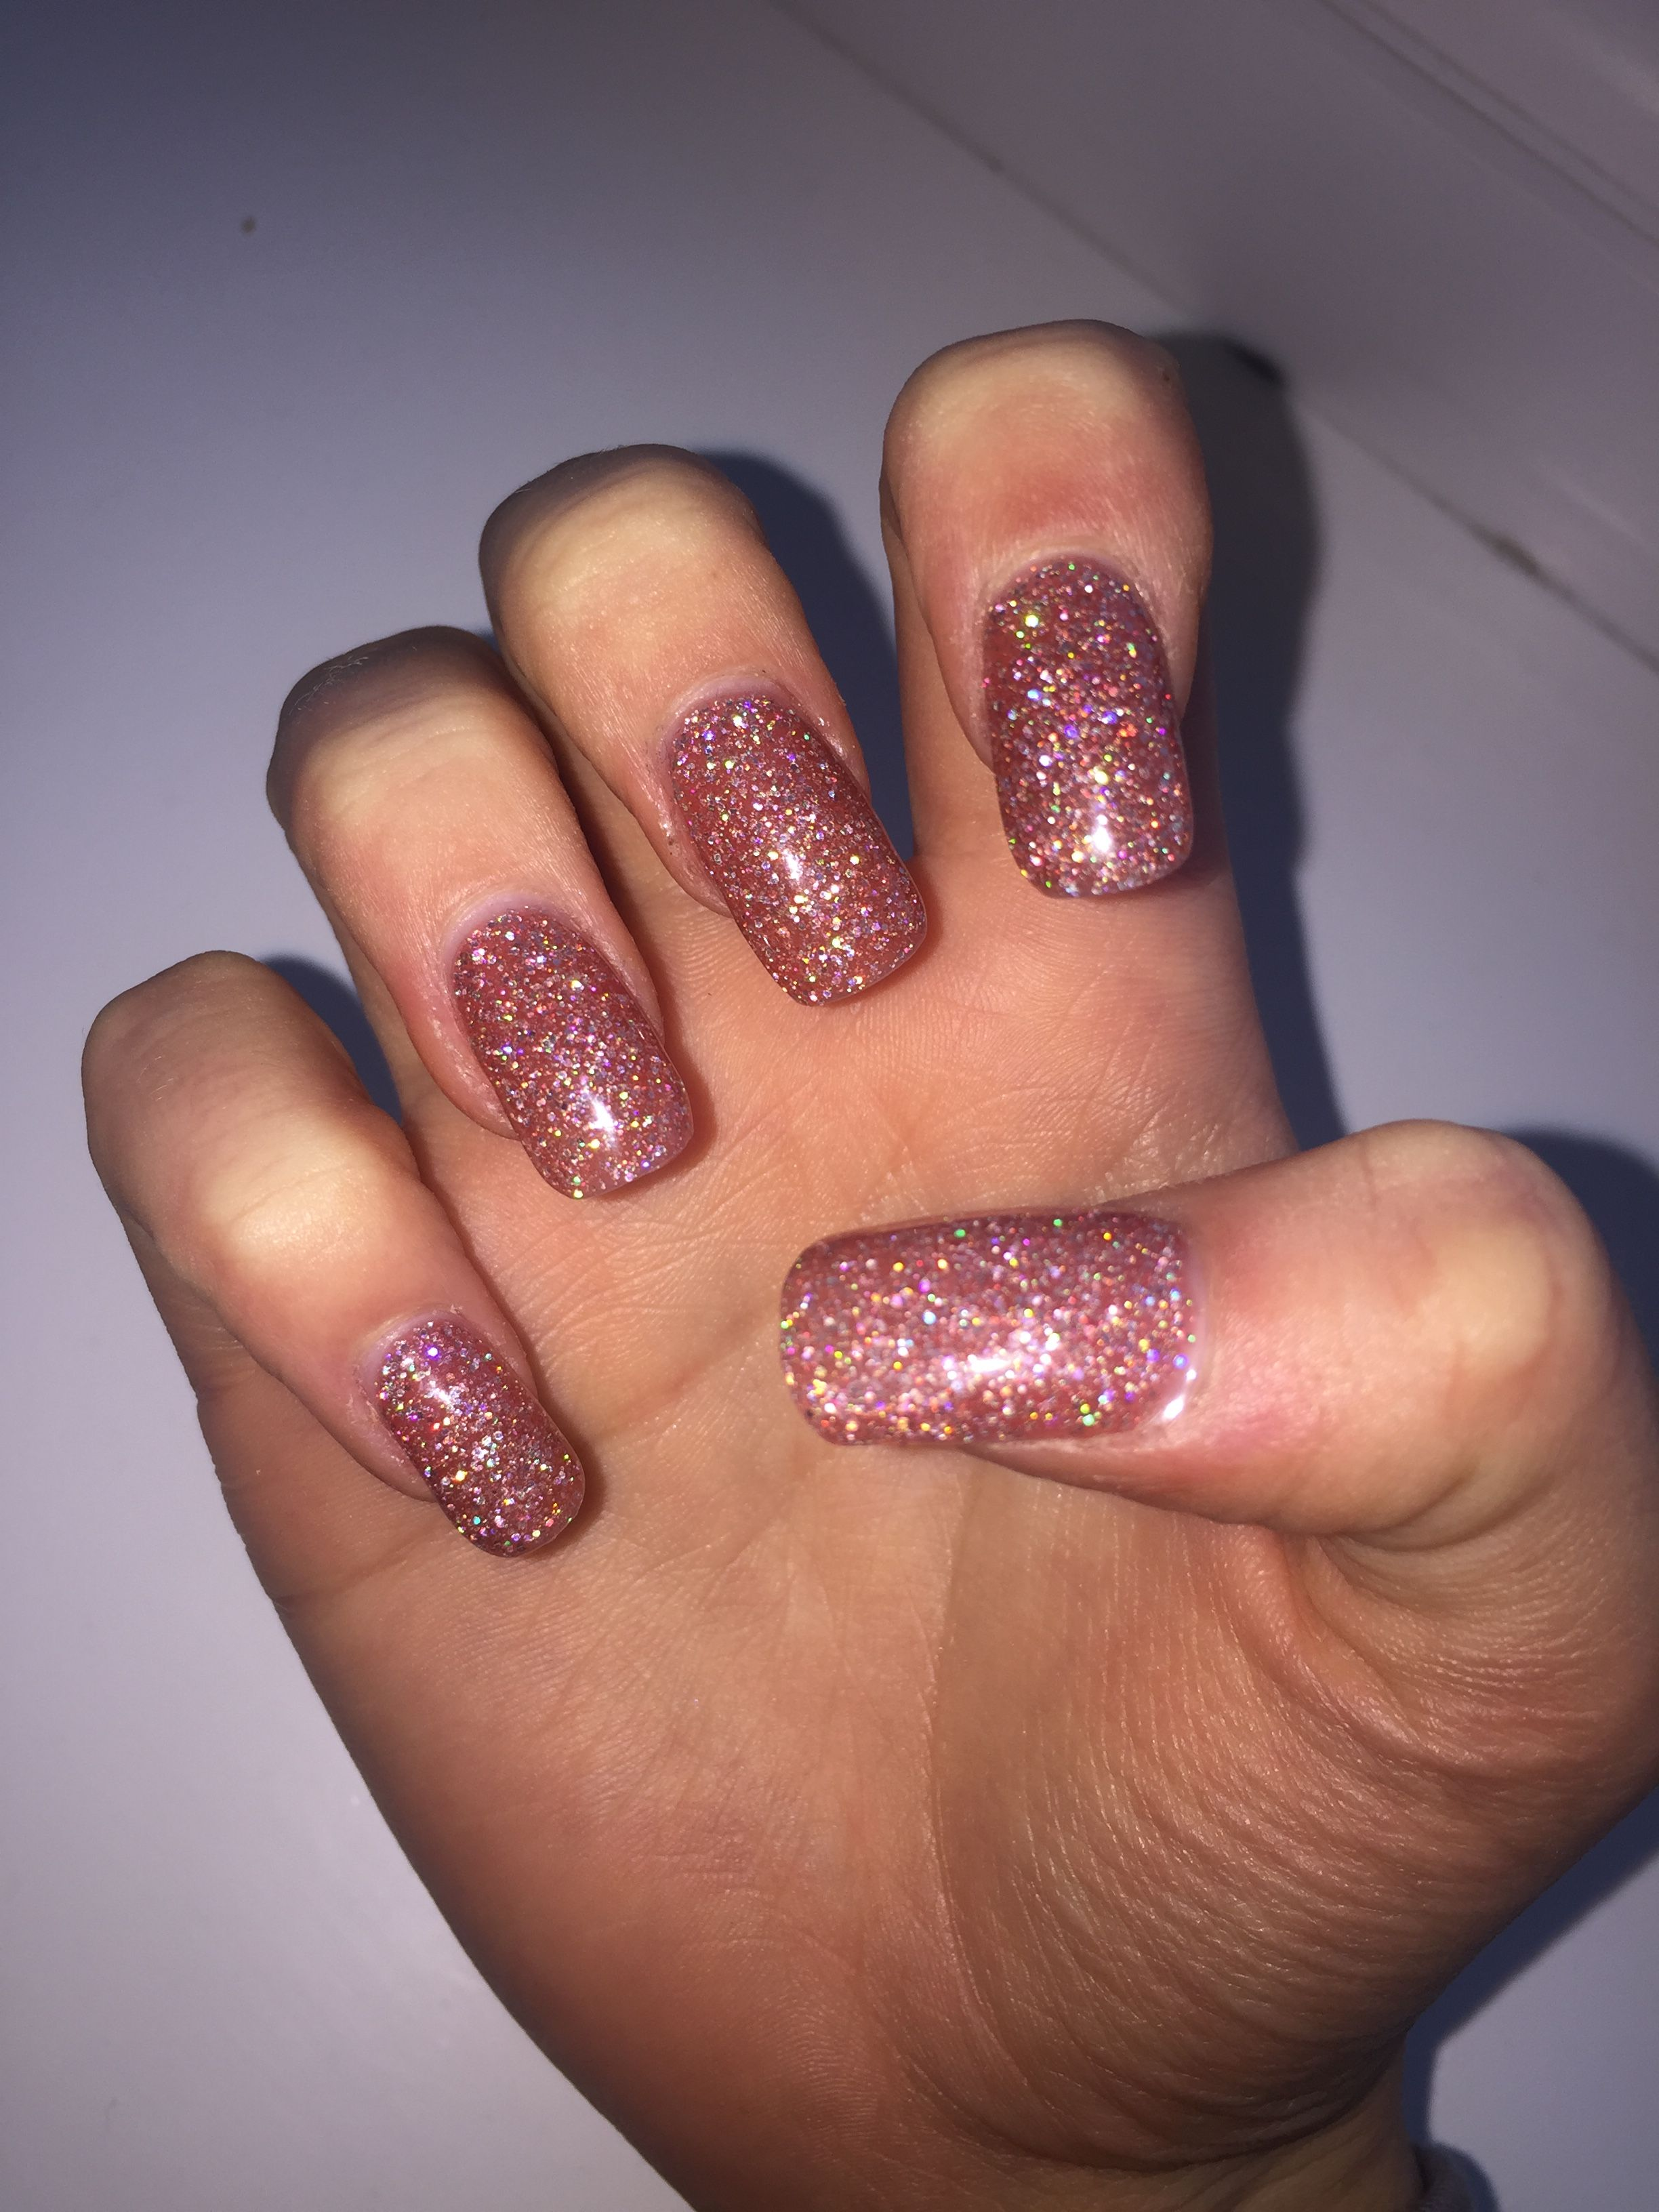 gorgeous glitter acrylic nails with gel polish #acrylics #nails ...